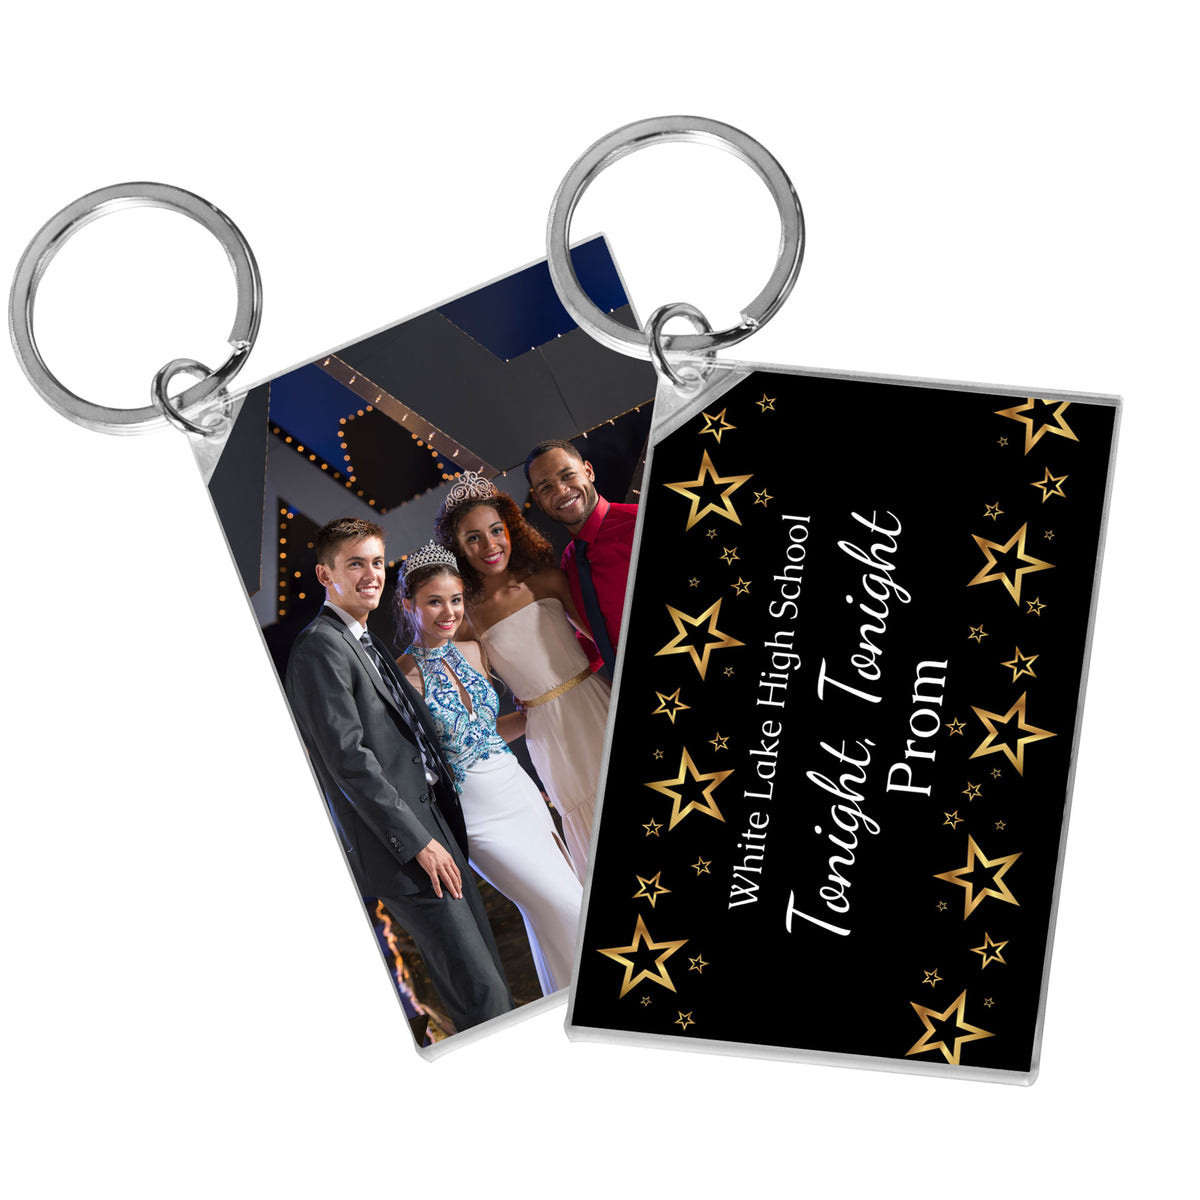 Tonight, Tonight Personalized Acrylic Key Chains